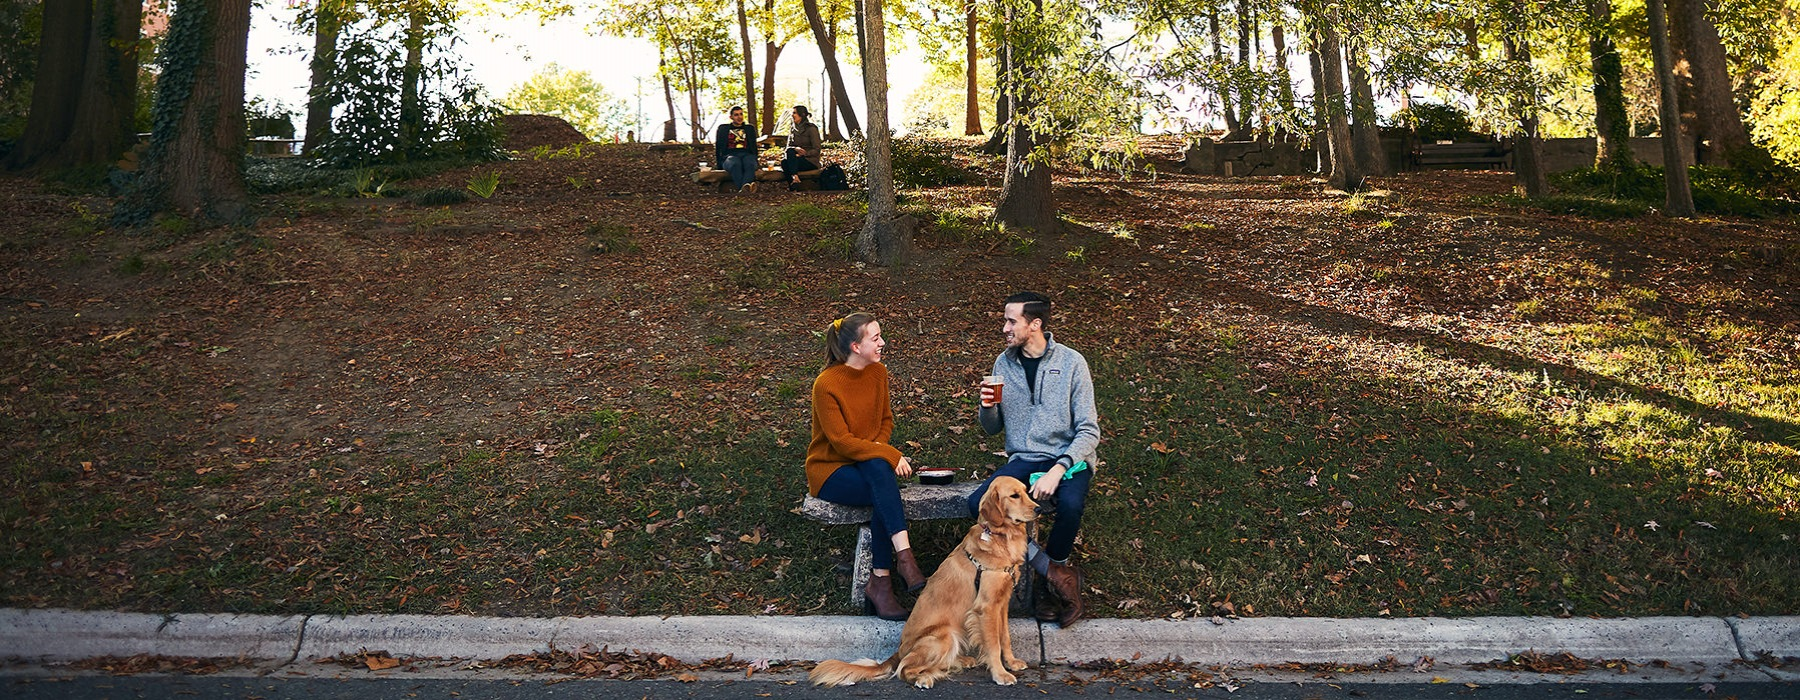 couple sitting bench with dog